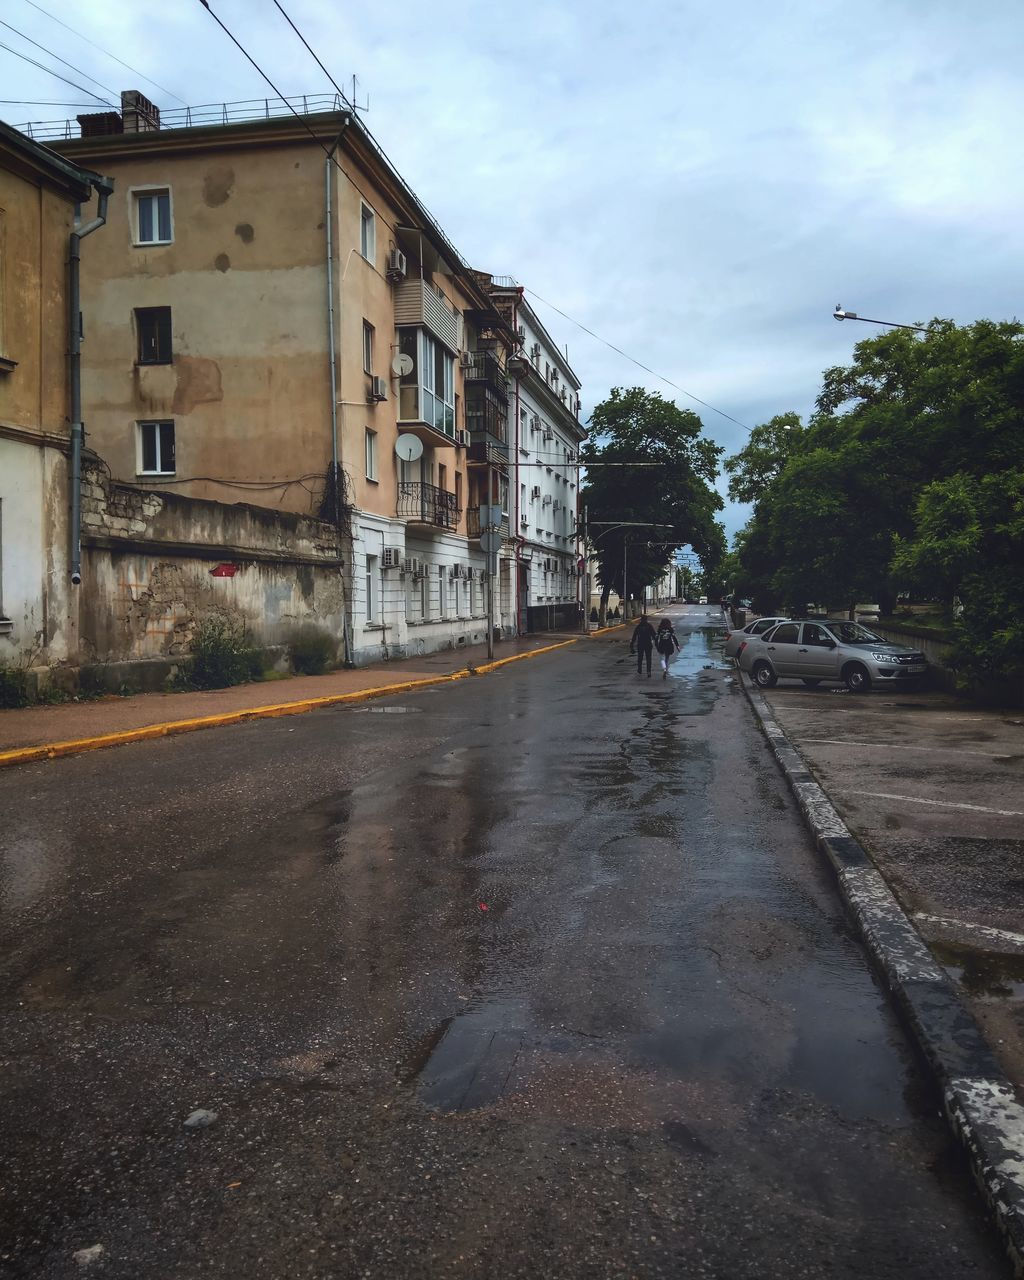 built structure, architecture, building exterior, sky, road, street, cloud - sky, house, wet, water, outdoors, residential building, day, tree, the way forward, puddle, no people, city